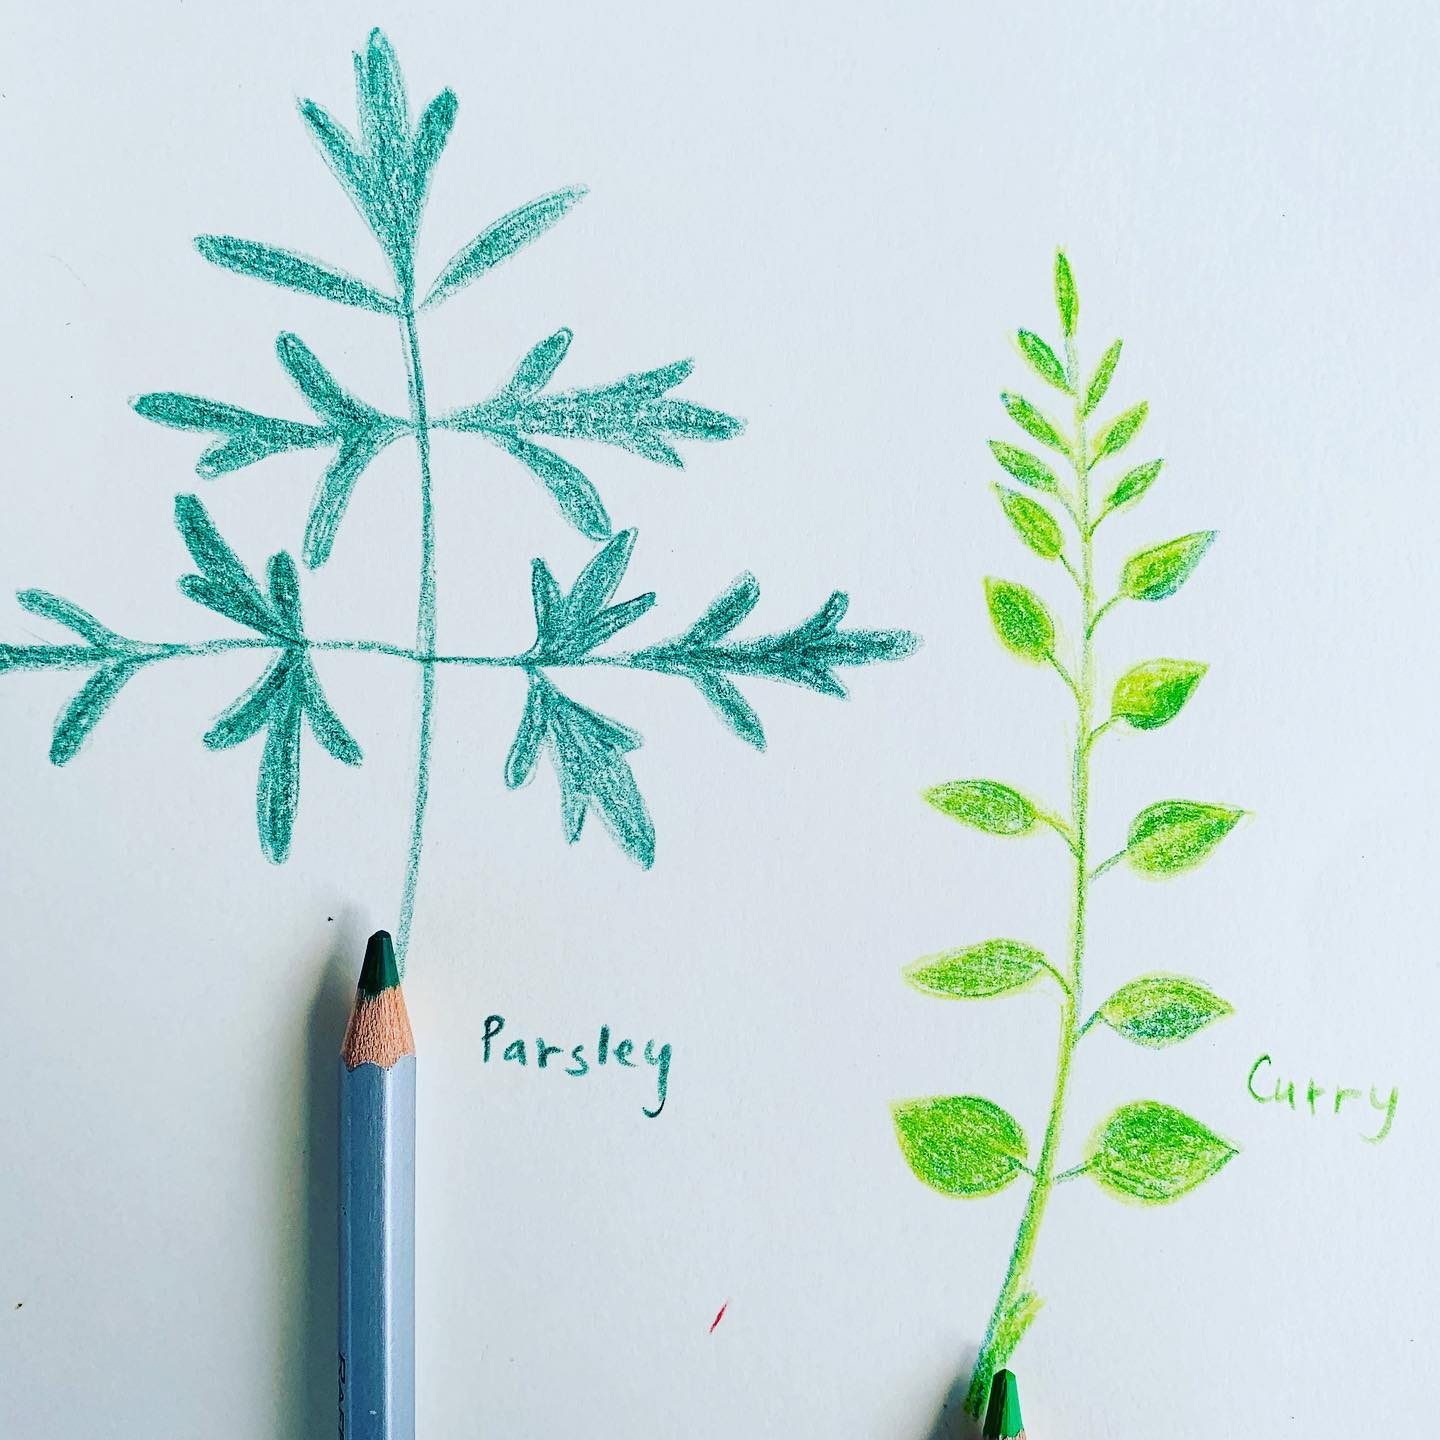 When you have no intention to cook, you sketch your herbs! Lunch will take care of itself!